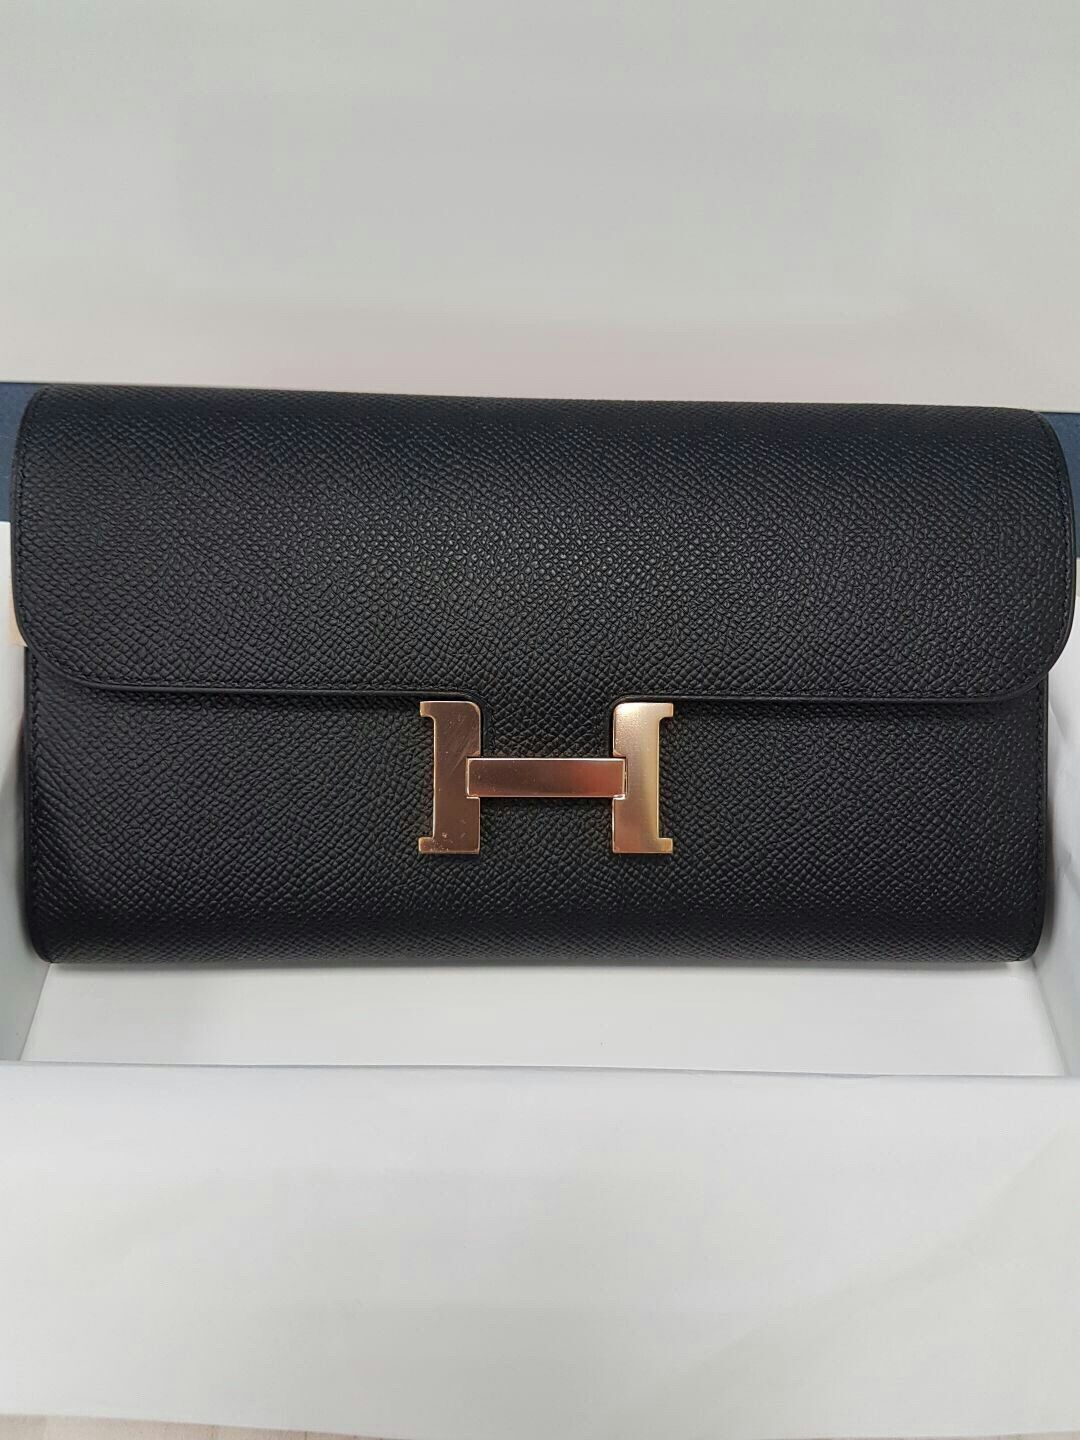 31e1ef444310a ... wholesale model hermes constance clutch condition new color black  leather epsom hardware rose gold comes with